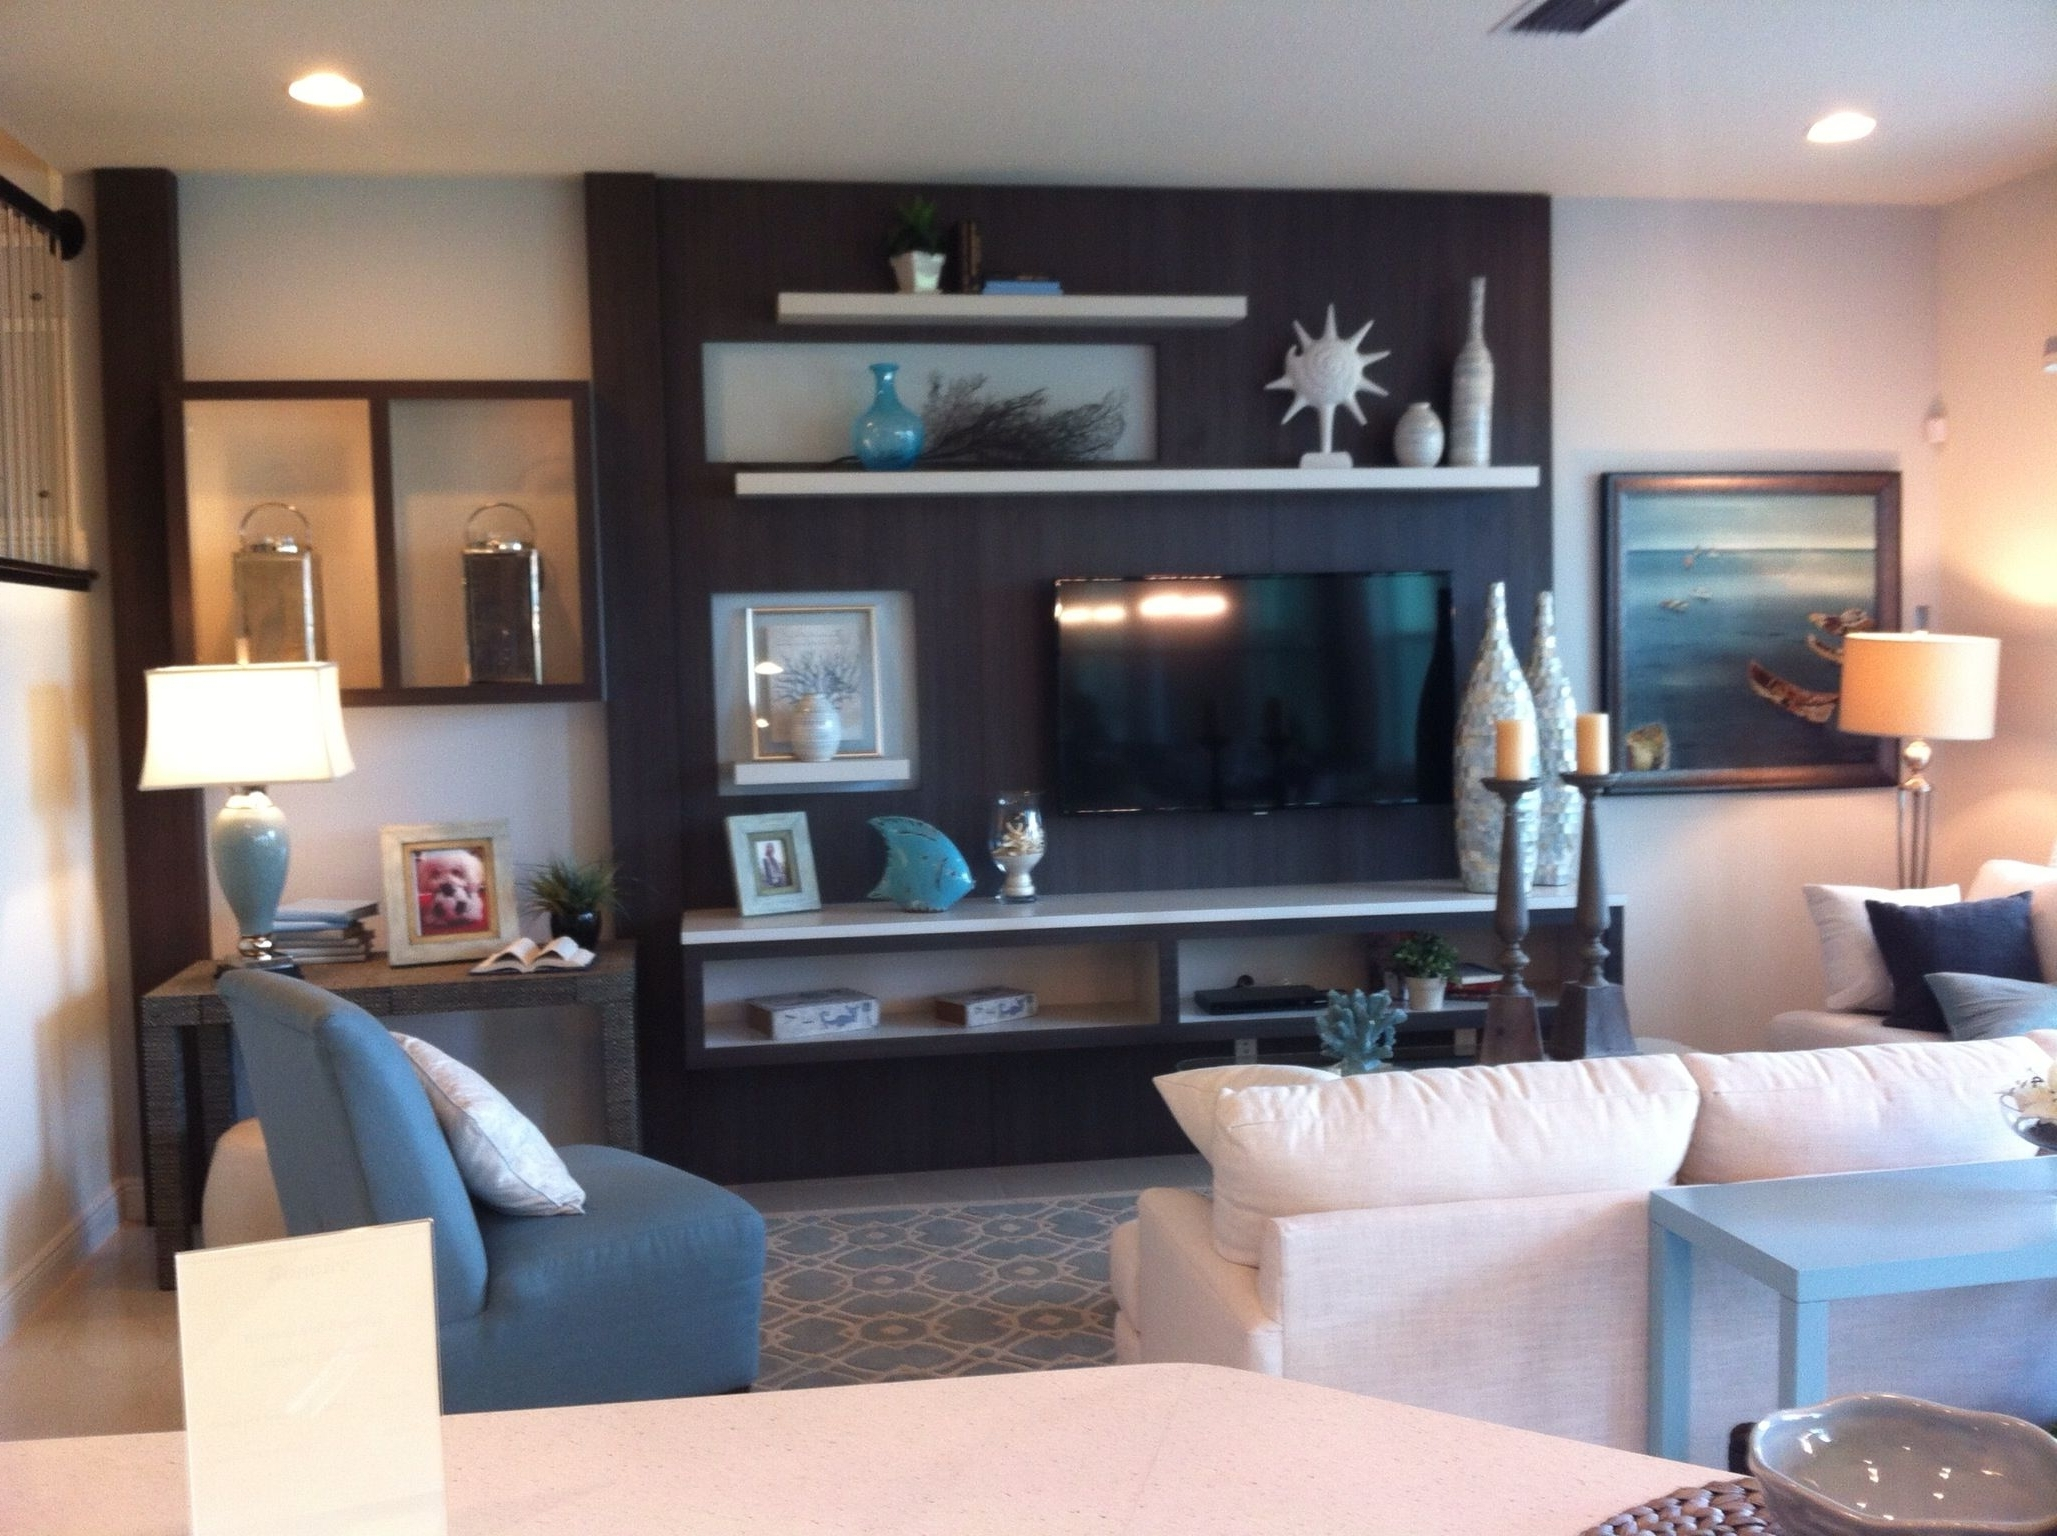 Wall Accents With Tv In Well Known Add An Accent Color In A Large Area Behind The Tv, But Maybe Not (View 11 of 15)